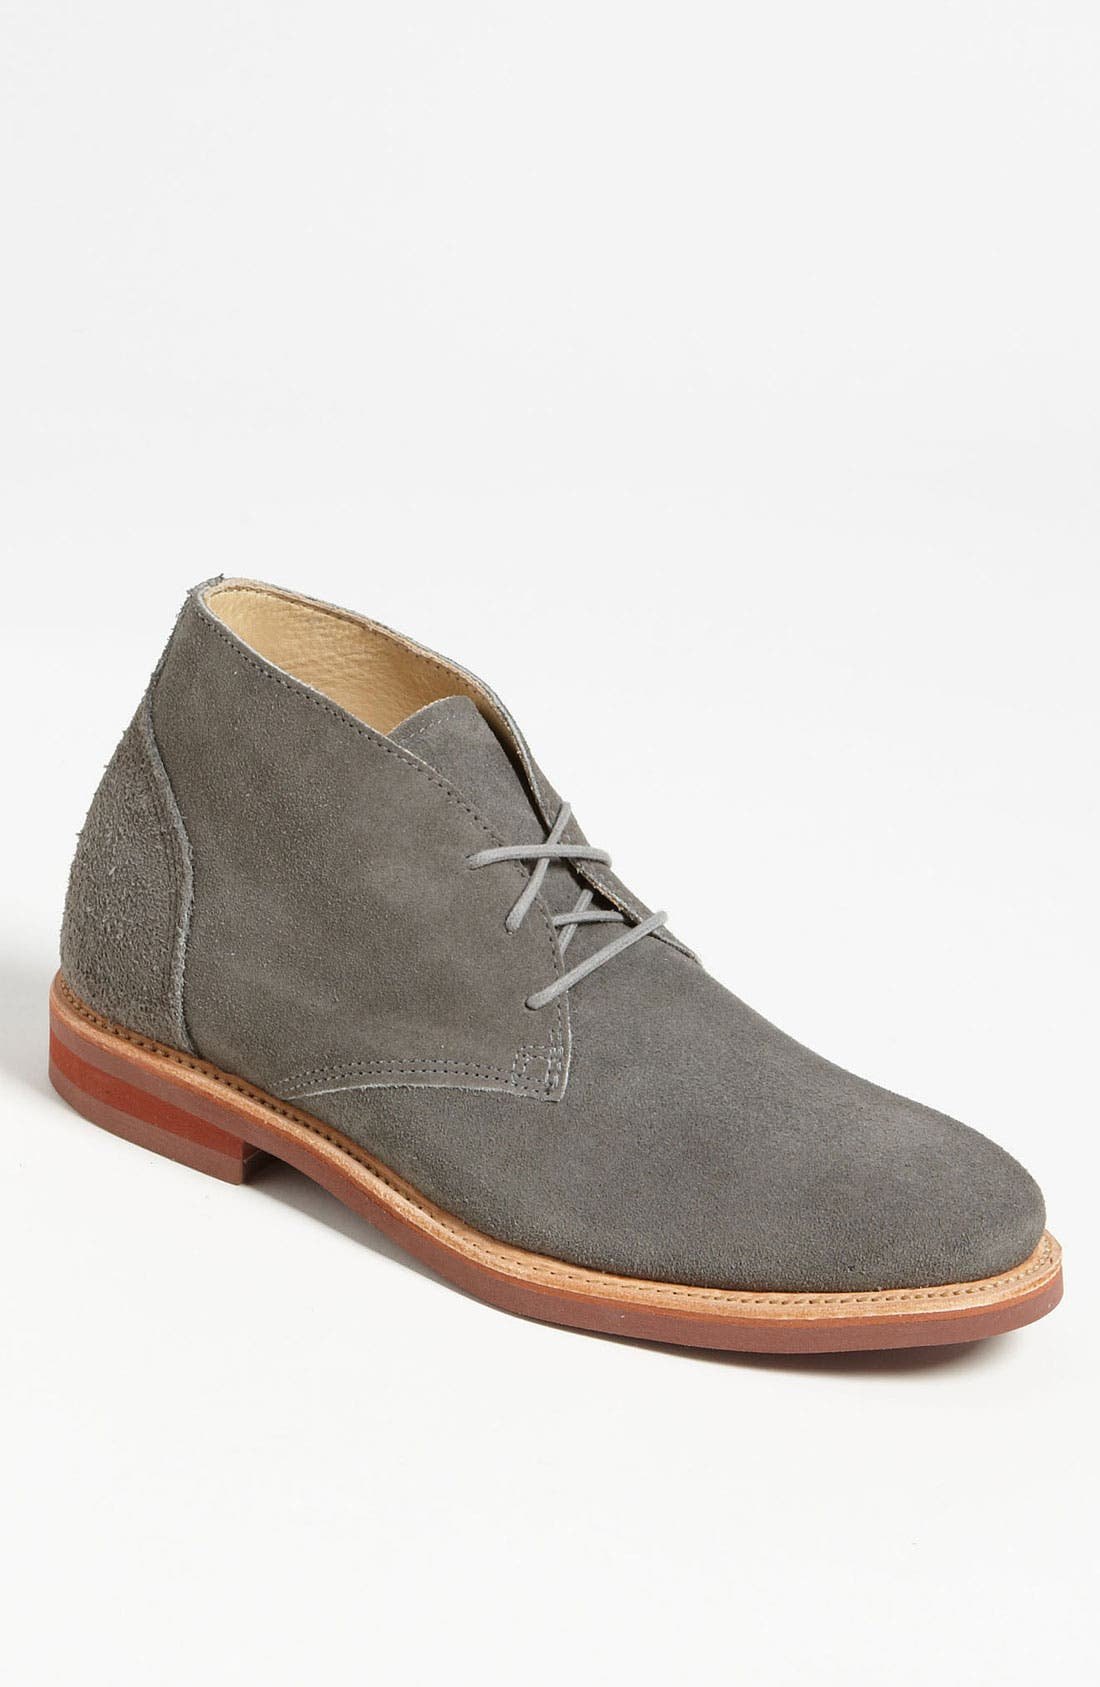 Main Image - Walk-Over 'Wilfred' Chukka Boot